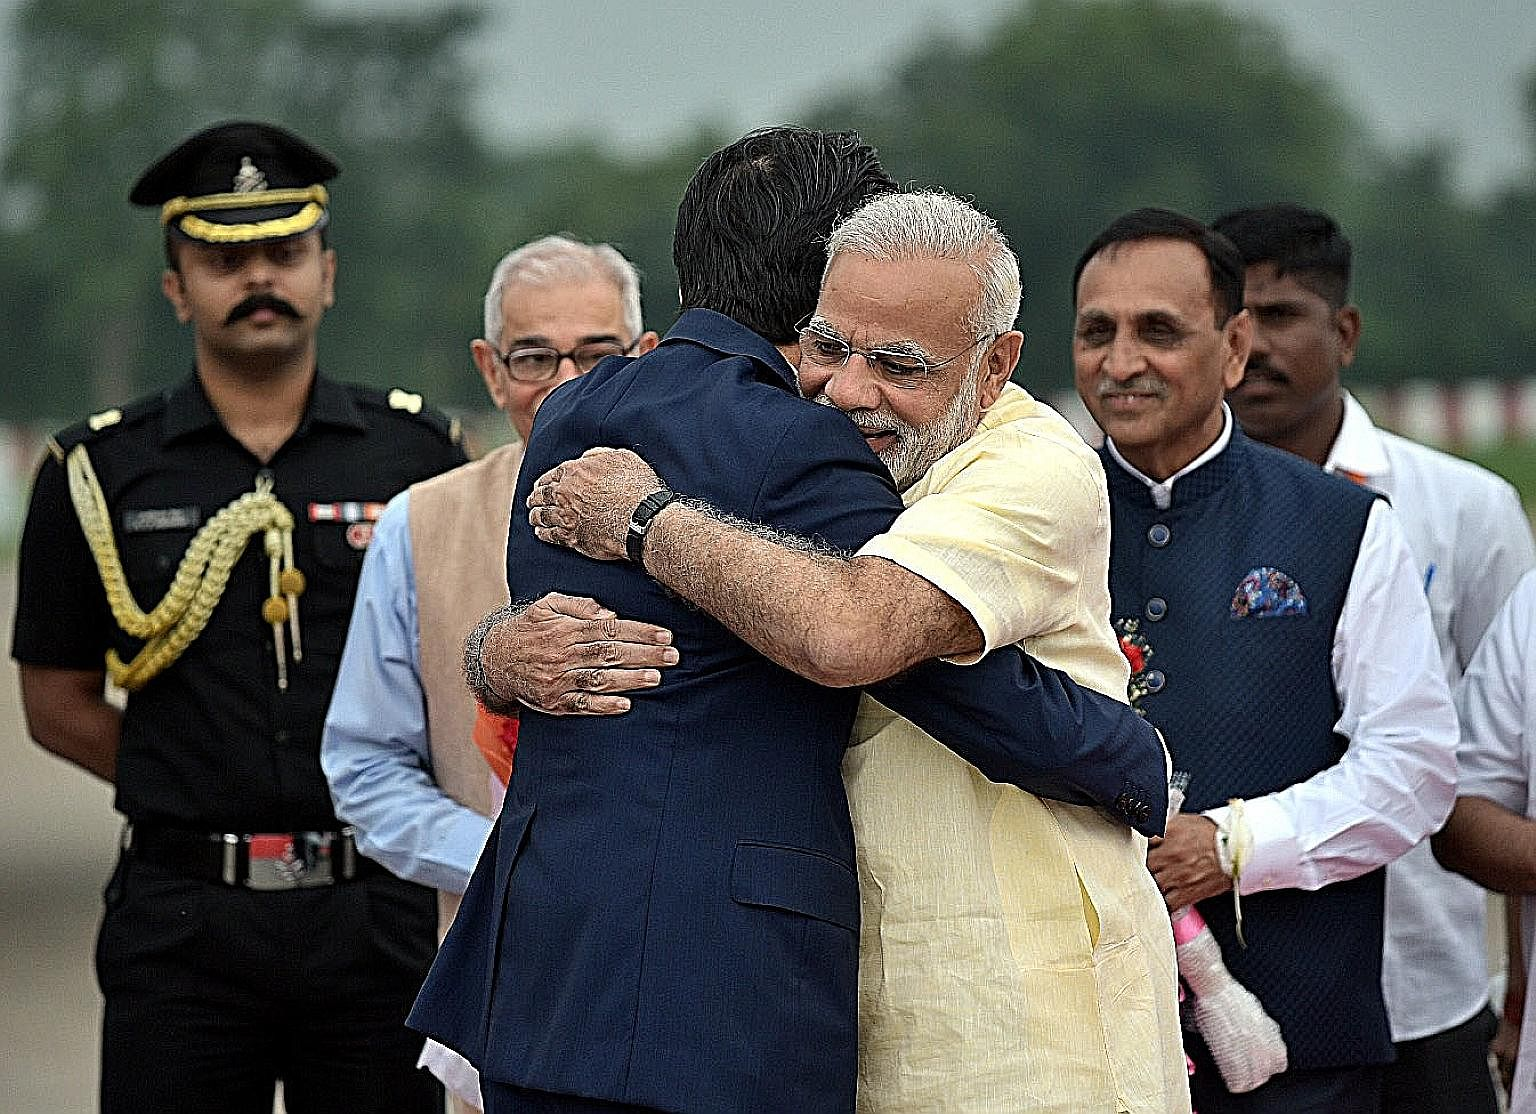 Mr Narendra Modi and Mr Shinzo Abe sharing a bear hug in Gujarat last week - a sign of warm relations between their two countries.